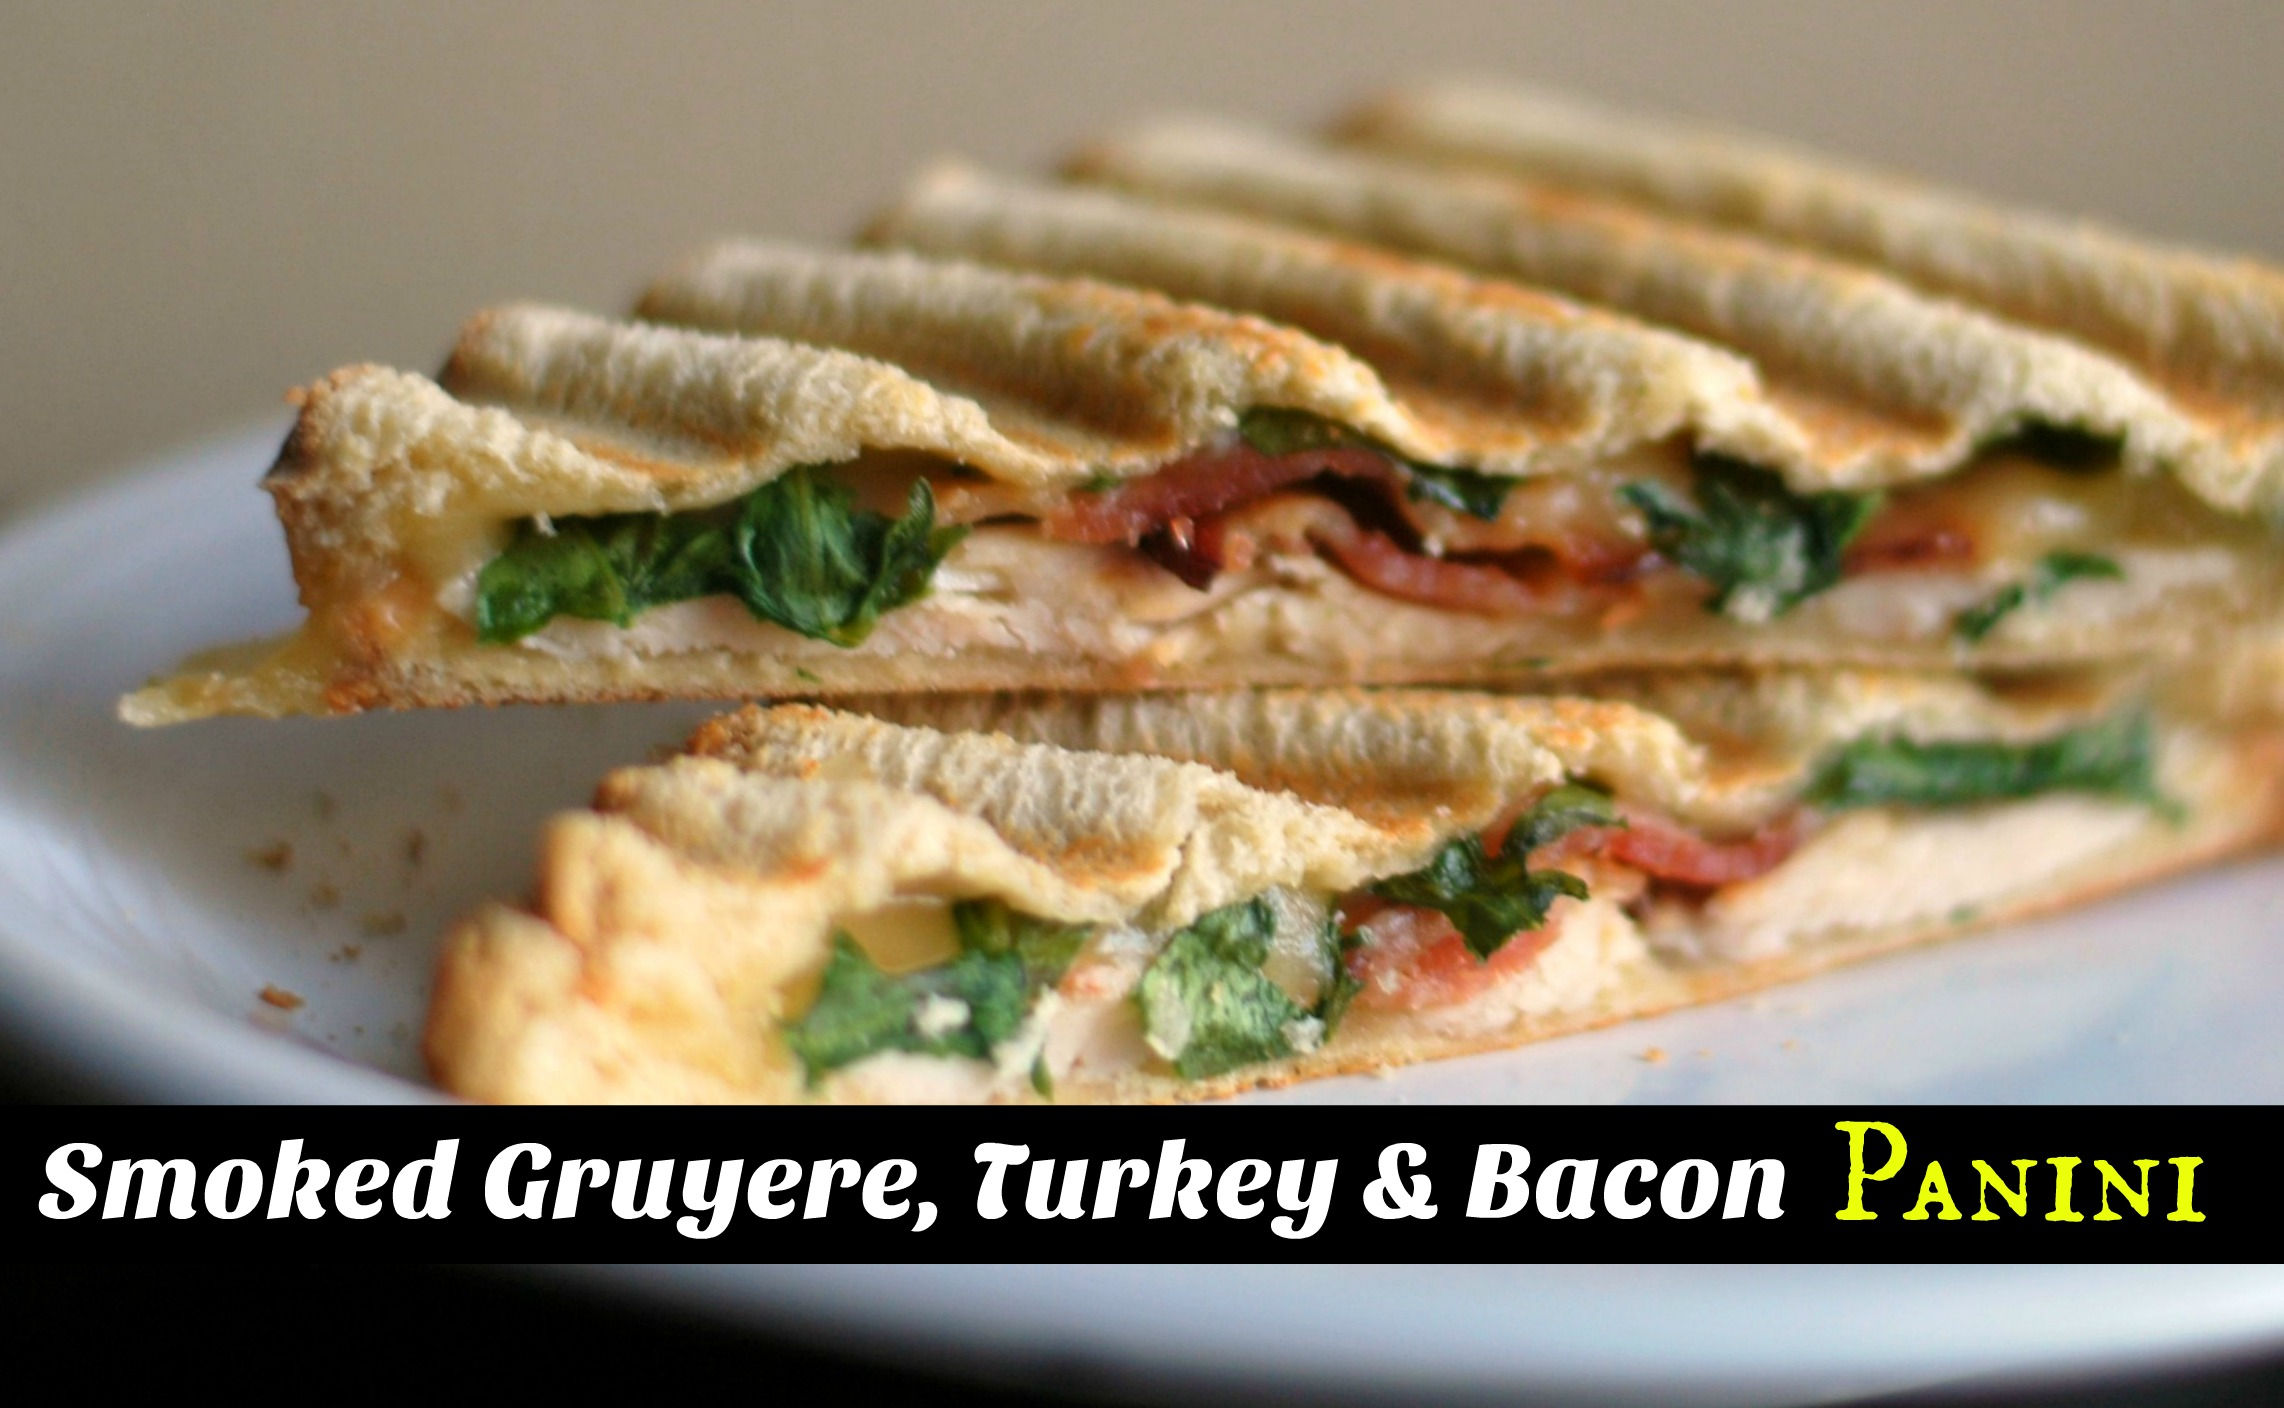 Smoked Gruyere, Turkey & Bacon Panini